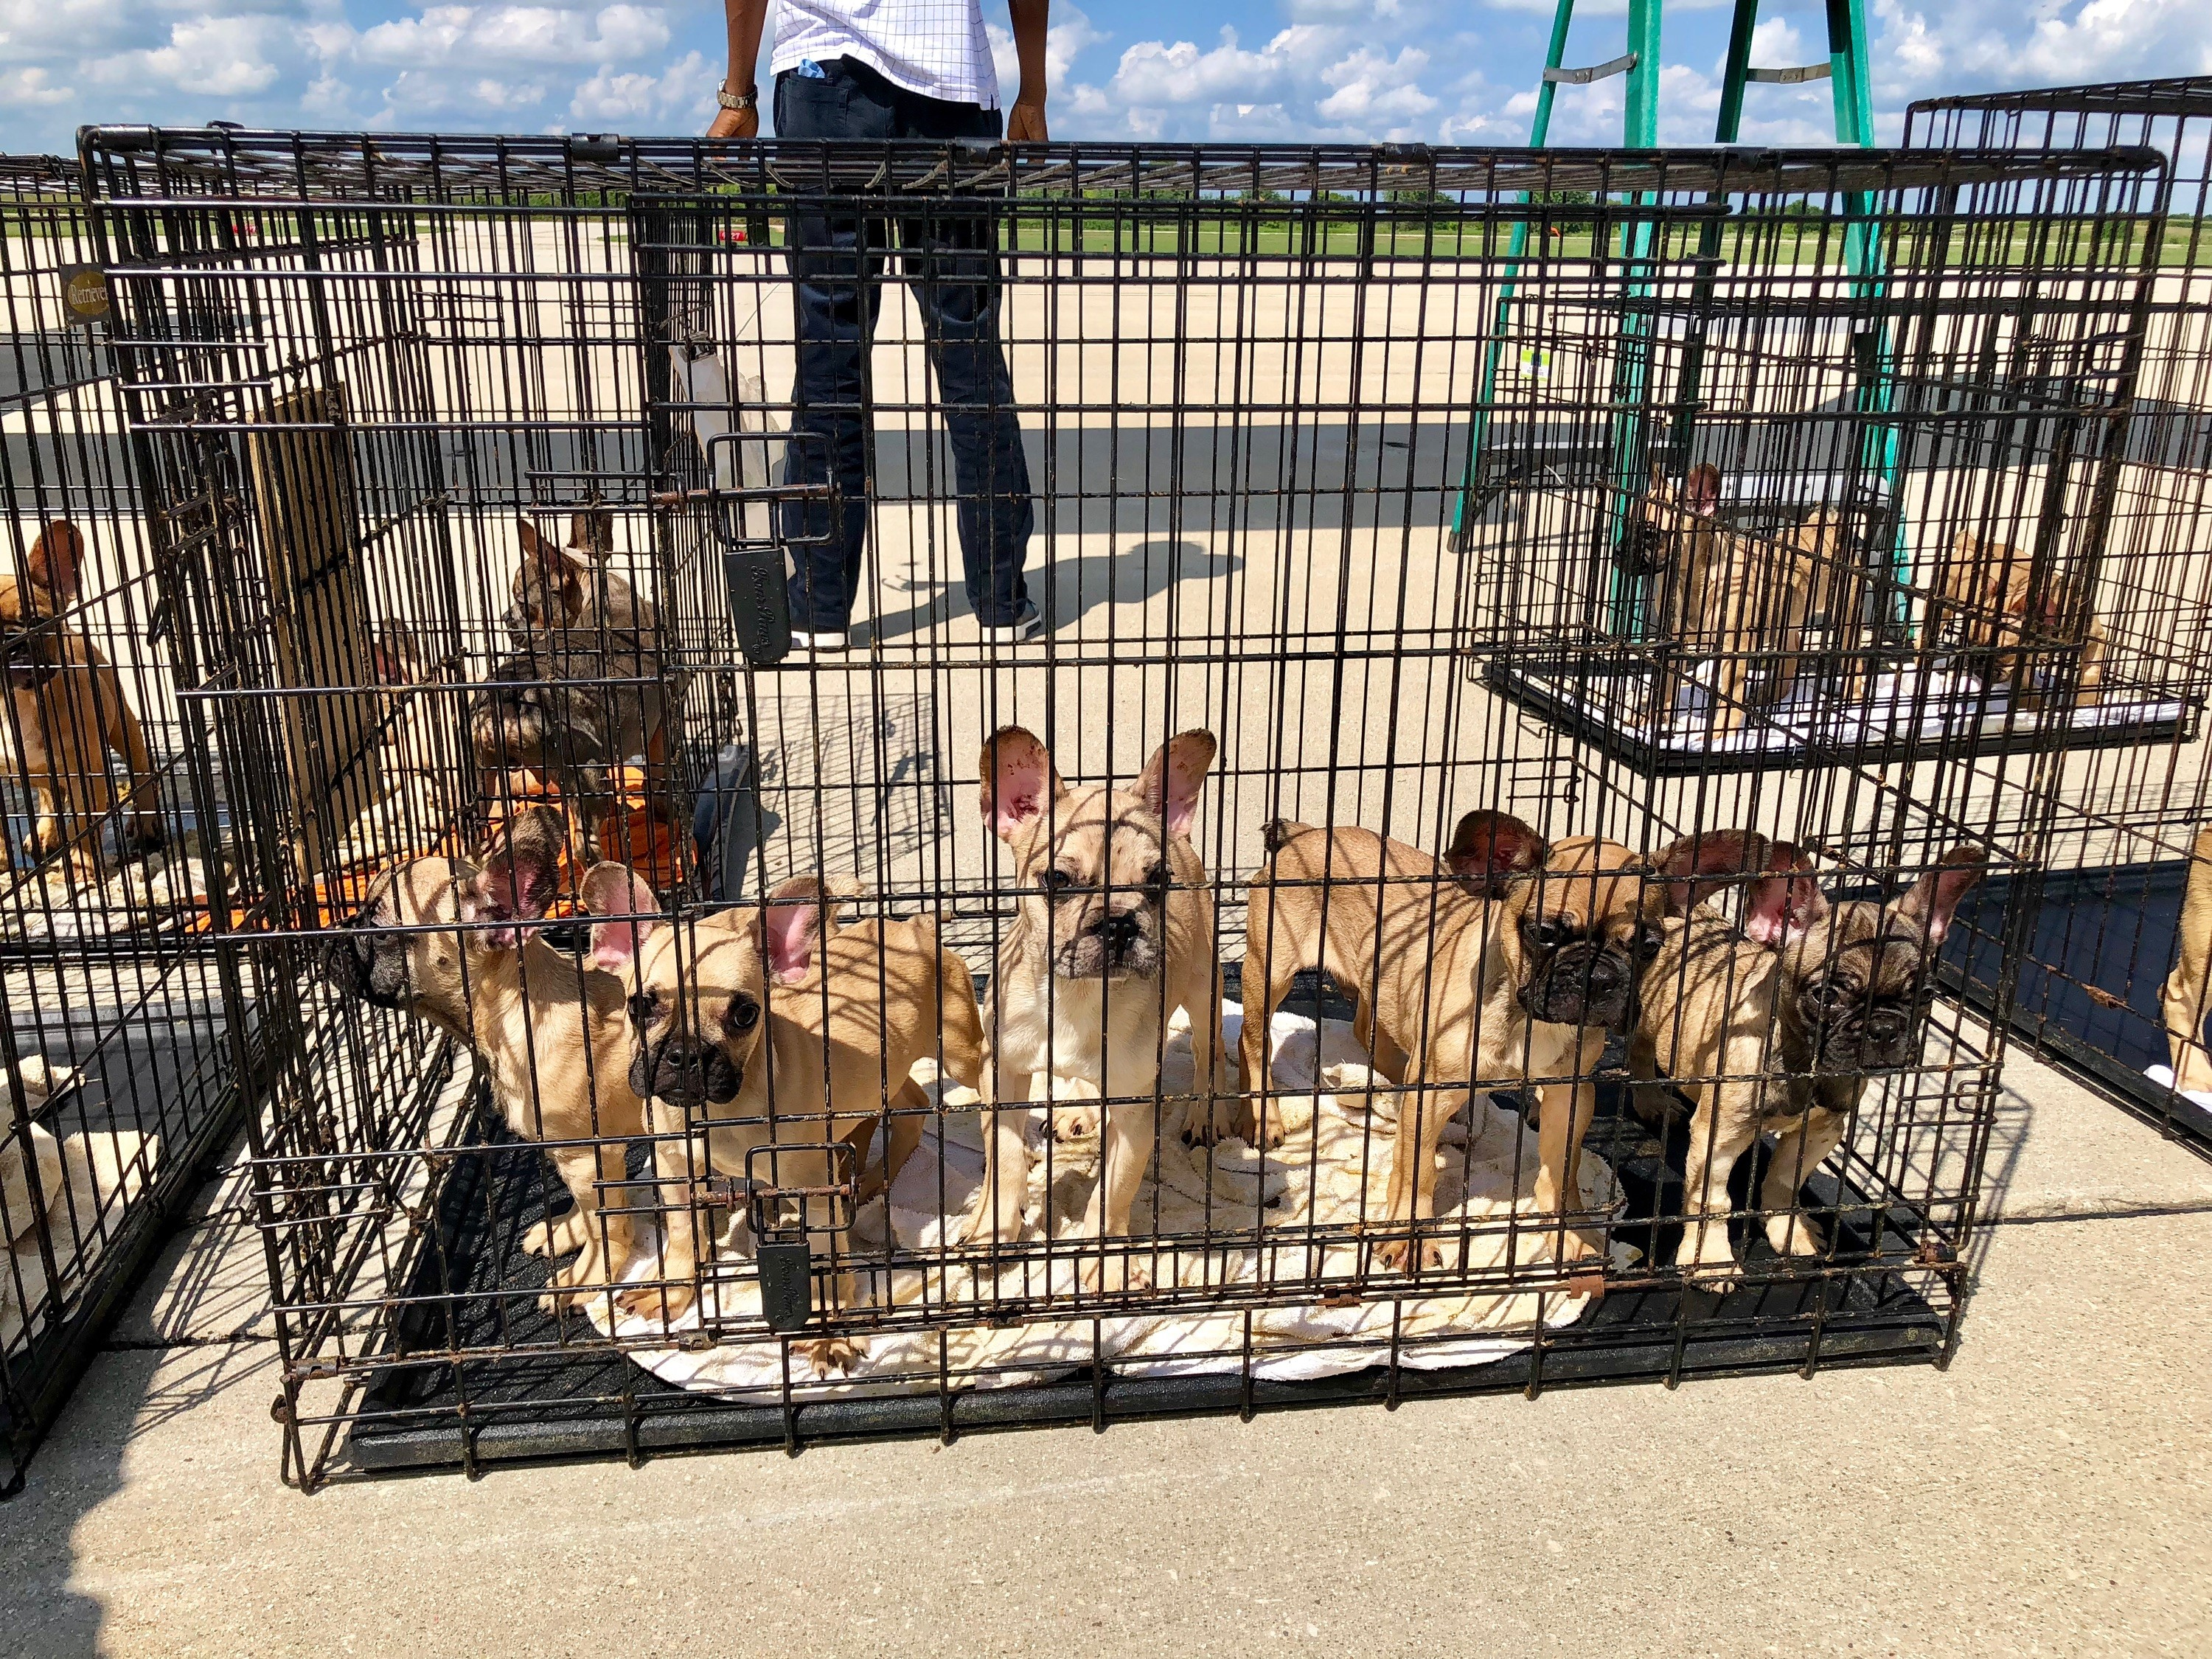 23 French Bulldog Puppies Rescued From Texas Brought To Chicago For